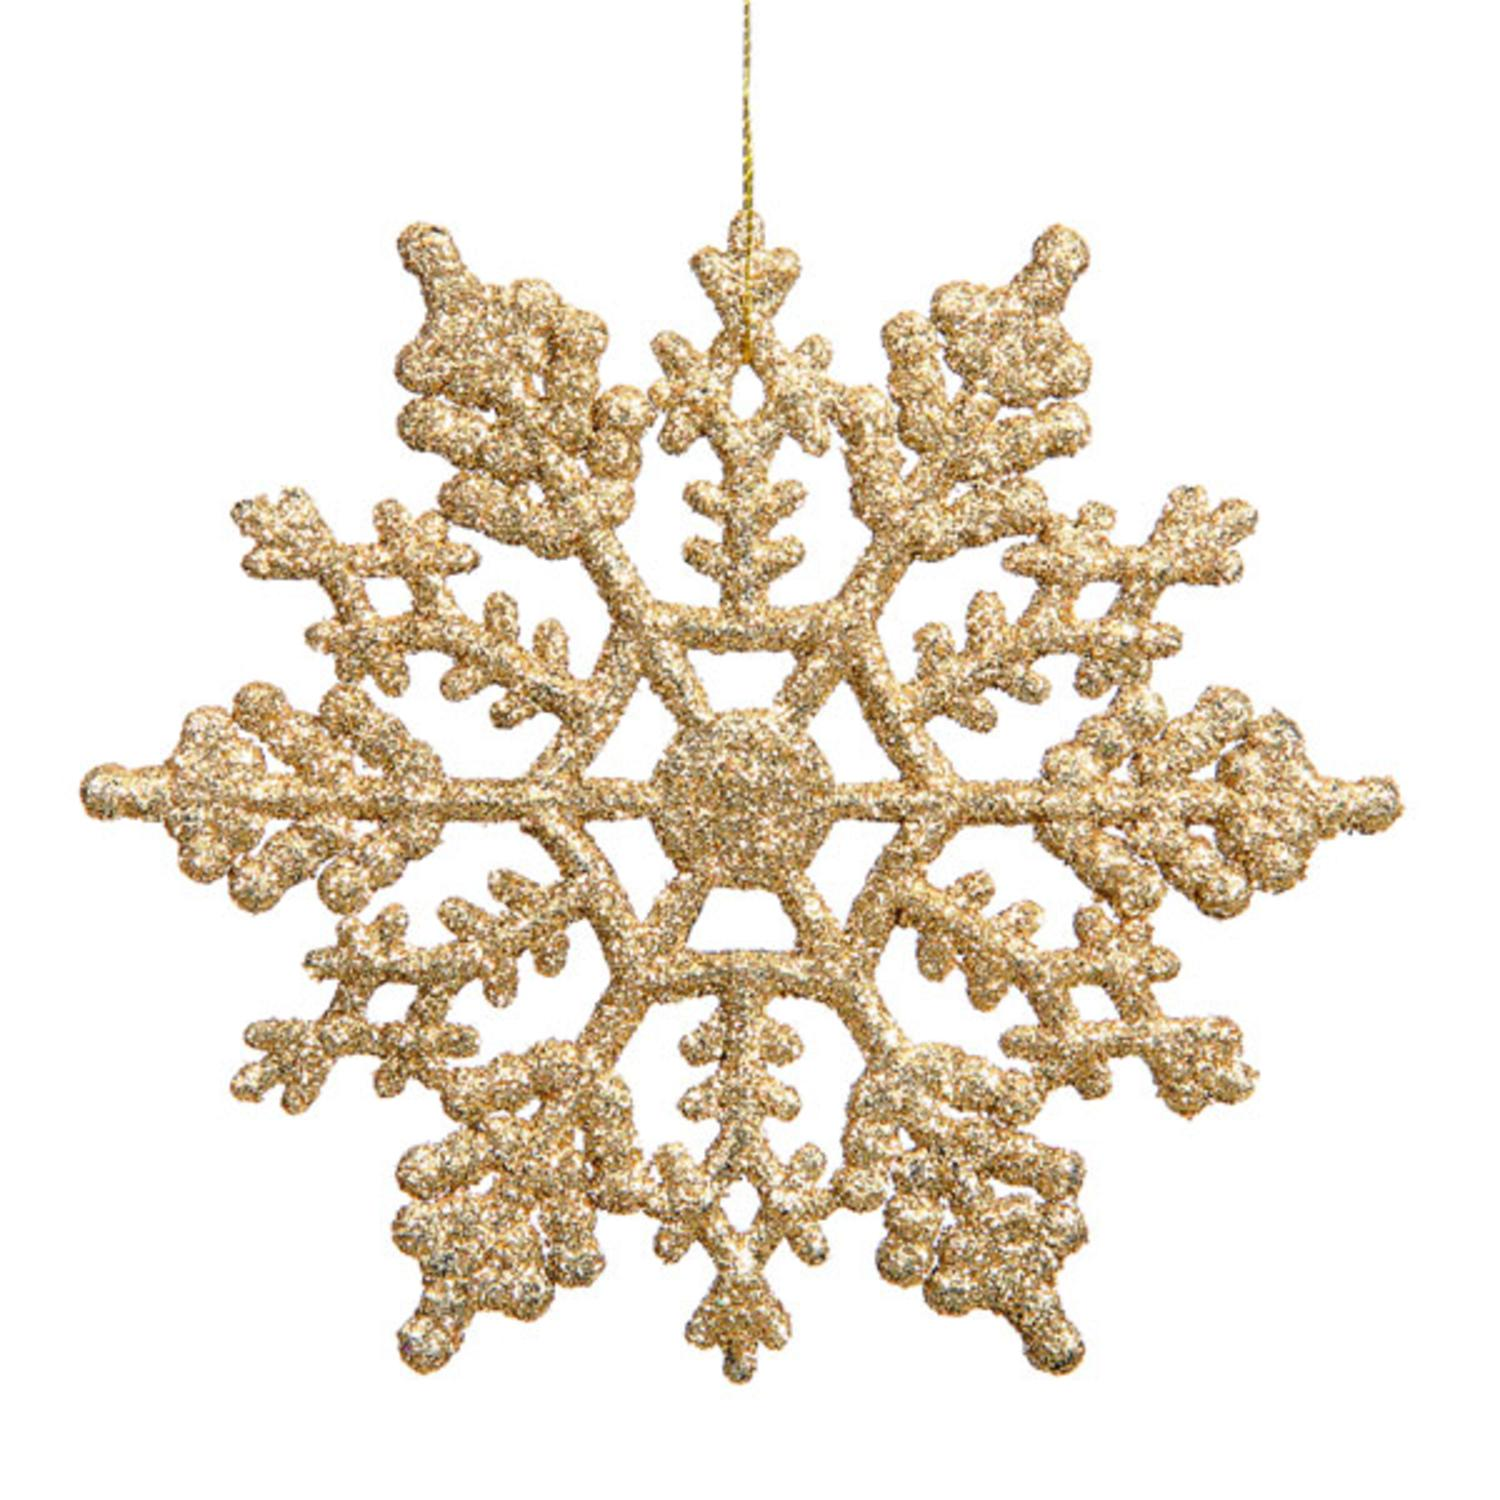 Club Pack of 24 Shimmering Gold Glitter Snowflake Christmas Ornaments 3.75""